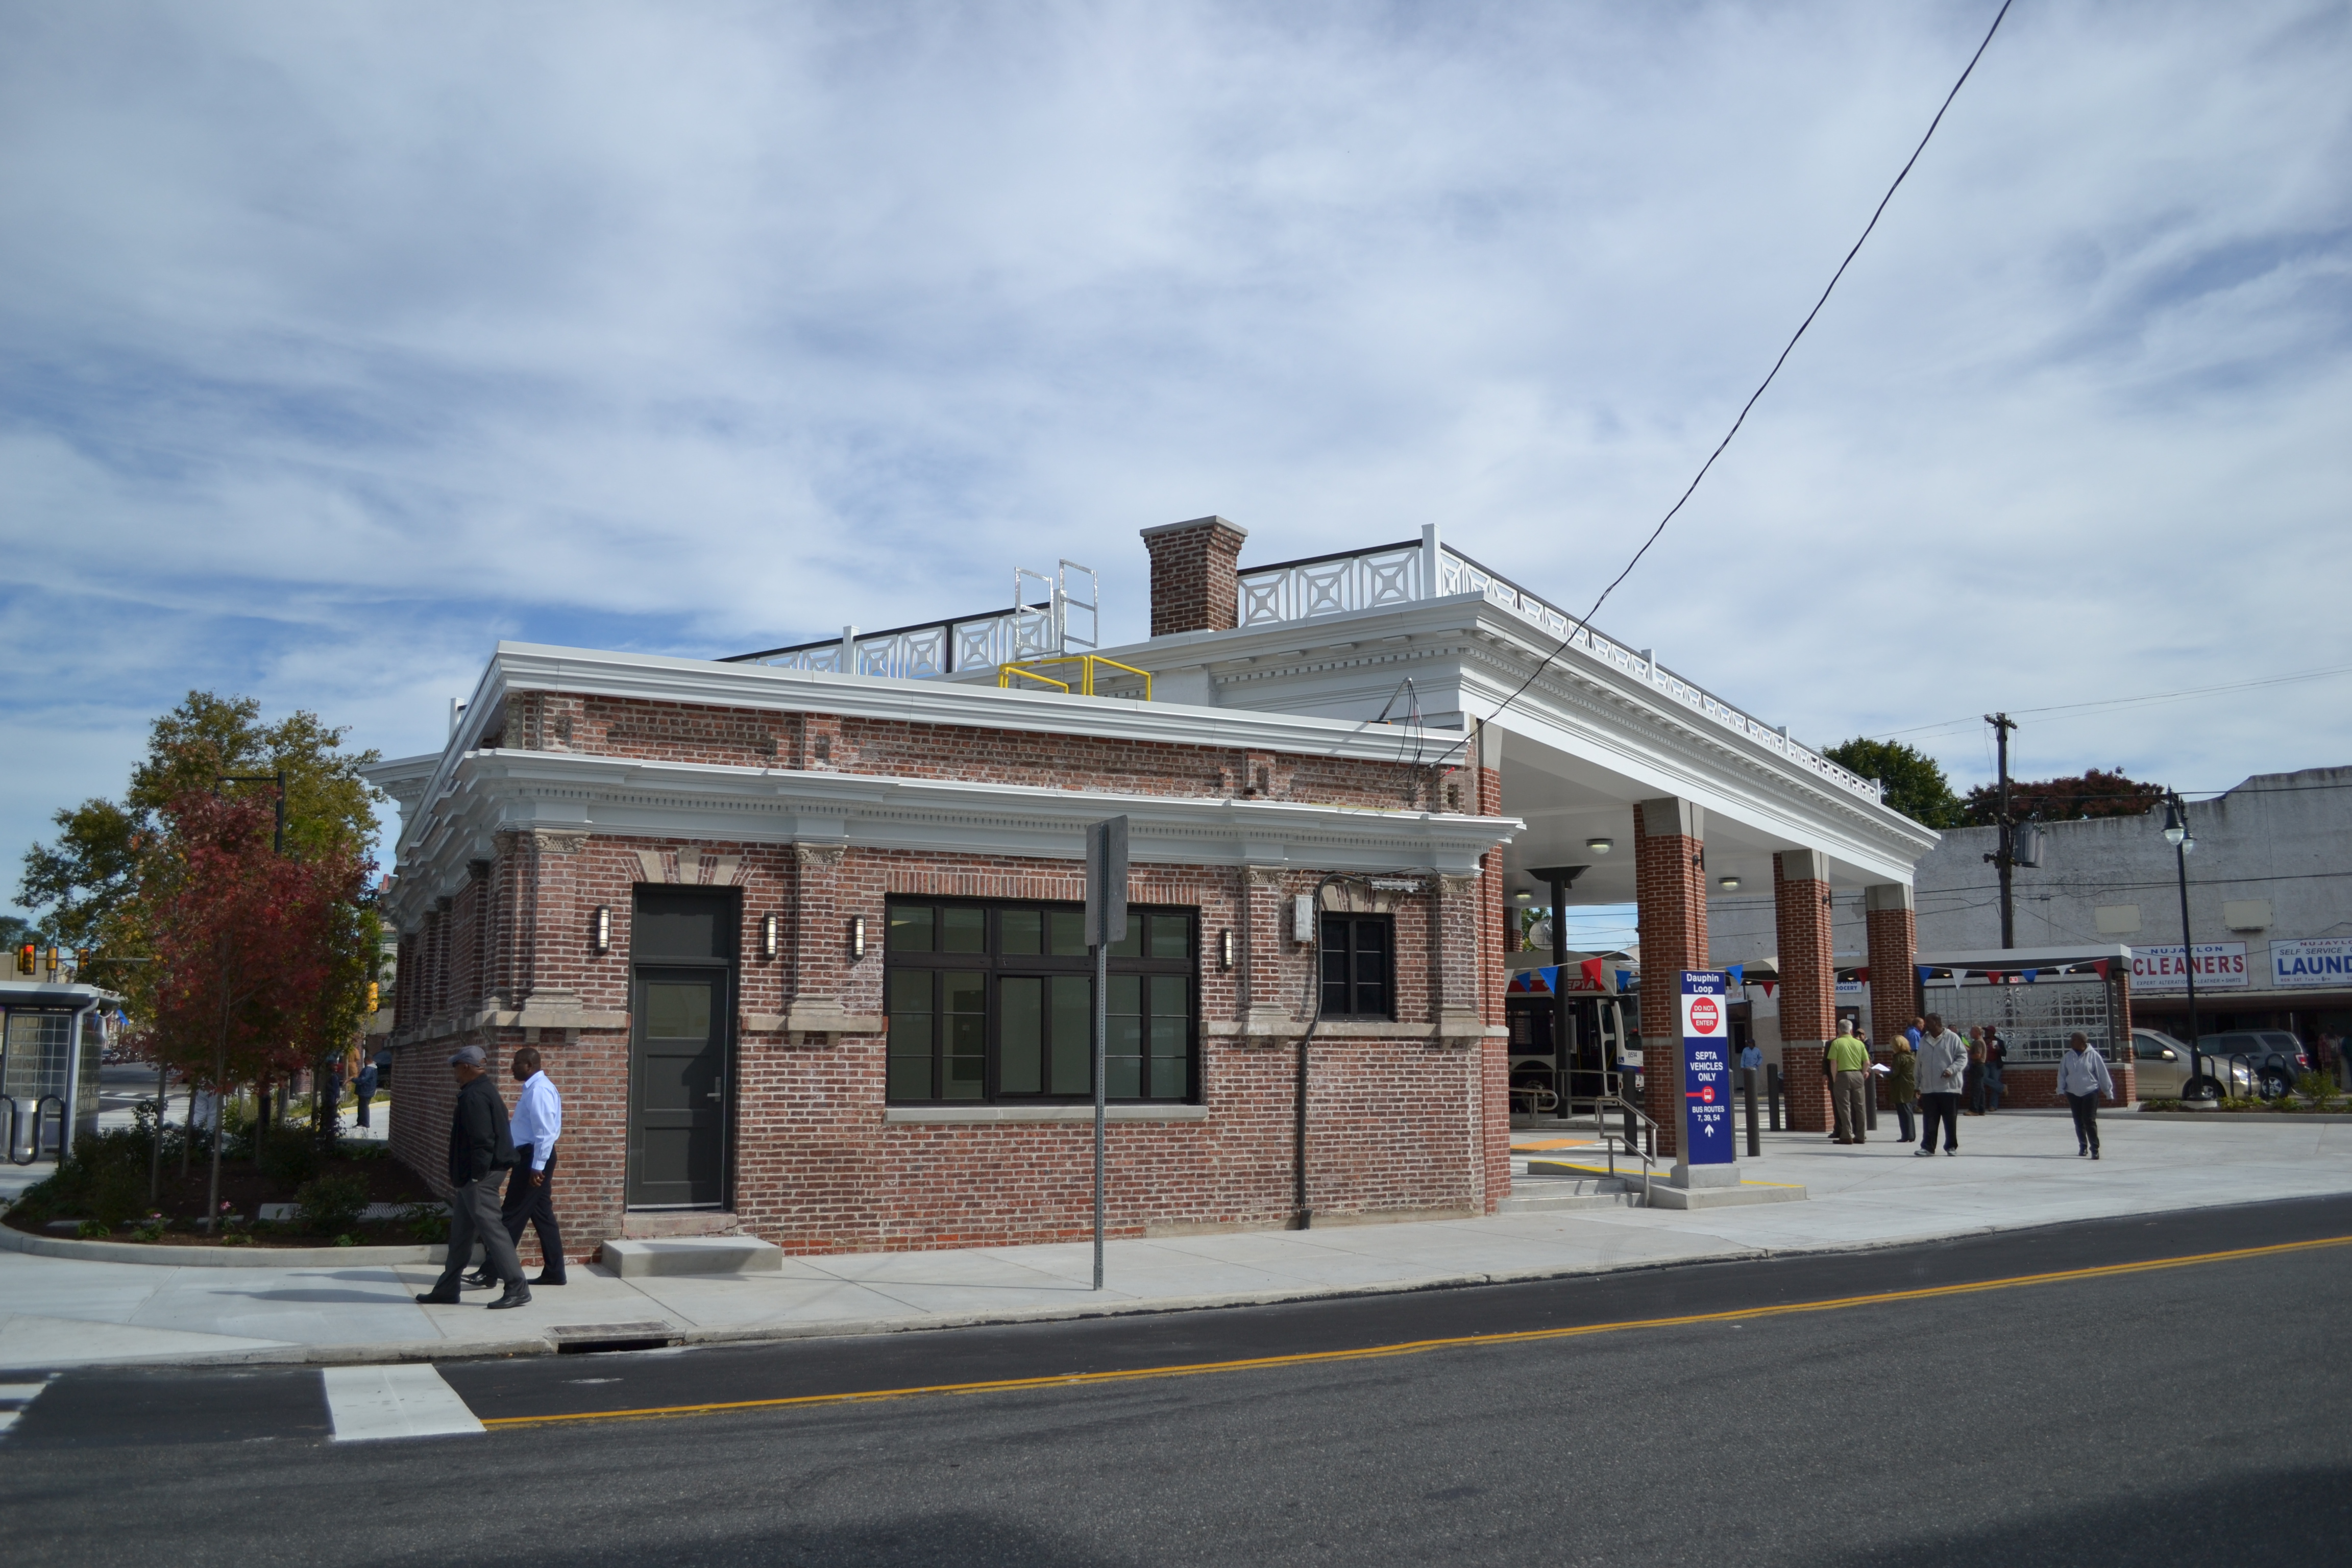 SEPTA preserved and restored the bus loop building, left, and replaced the bus canopy, right, using some of the original bricks